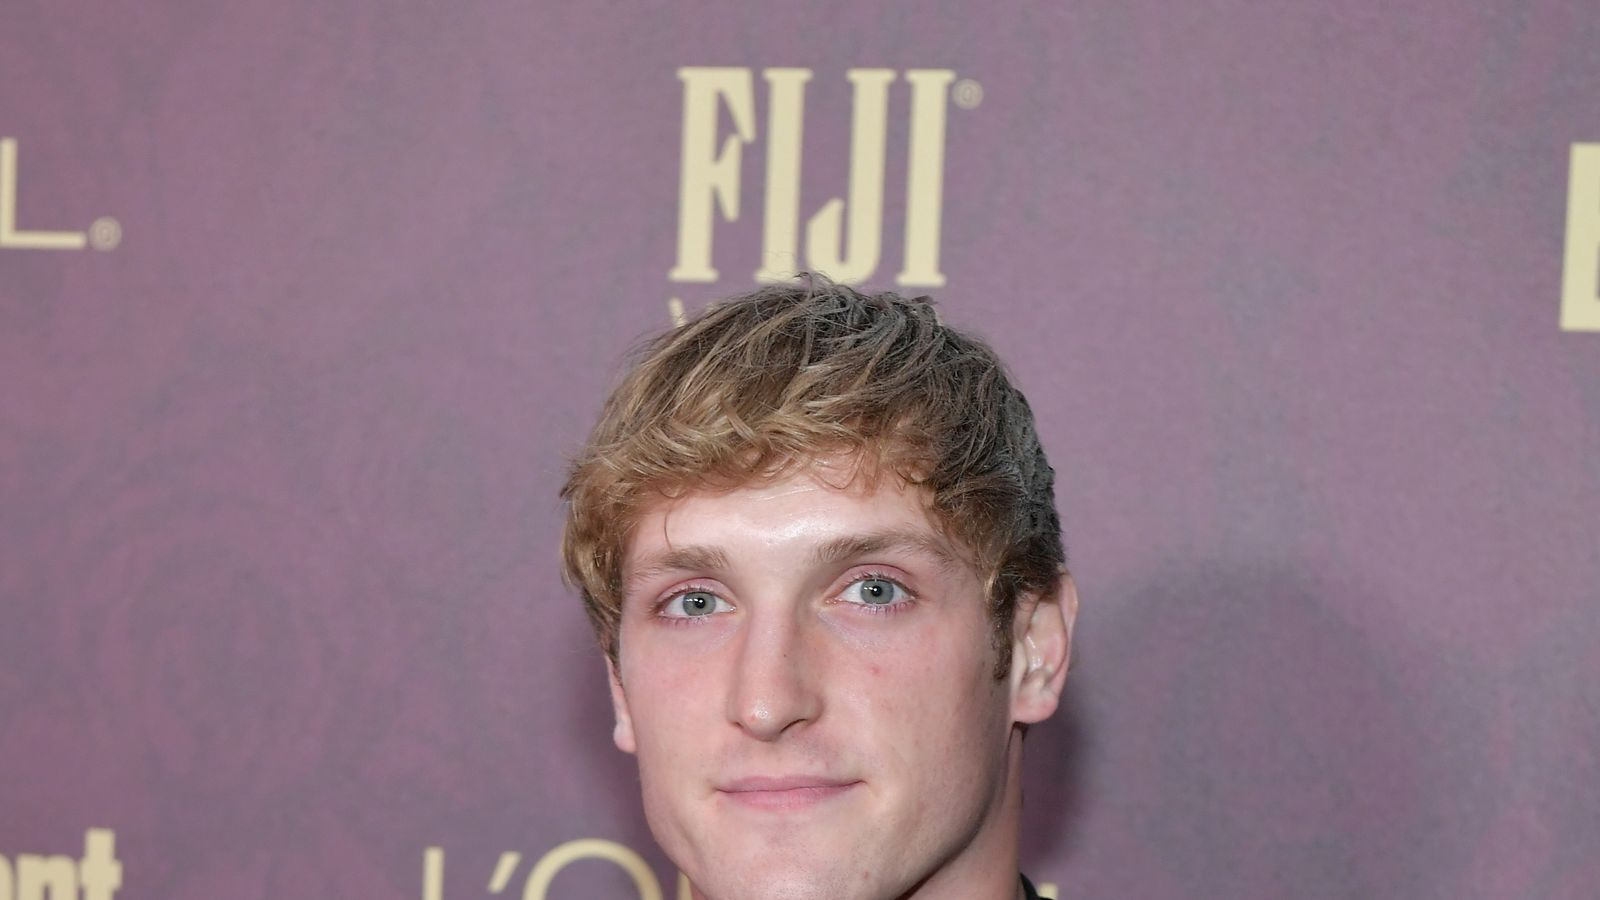 Logan Paul faces backlash after saying he will 'go gay for a month'